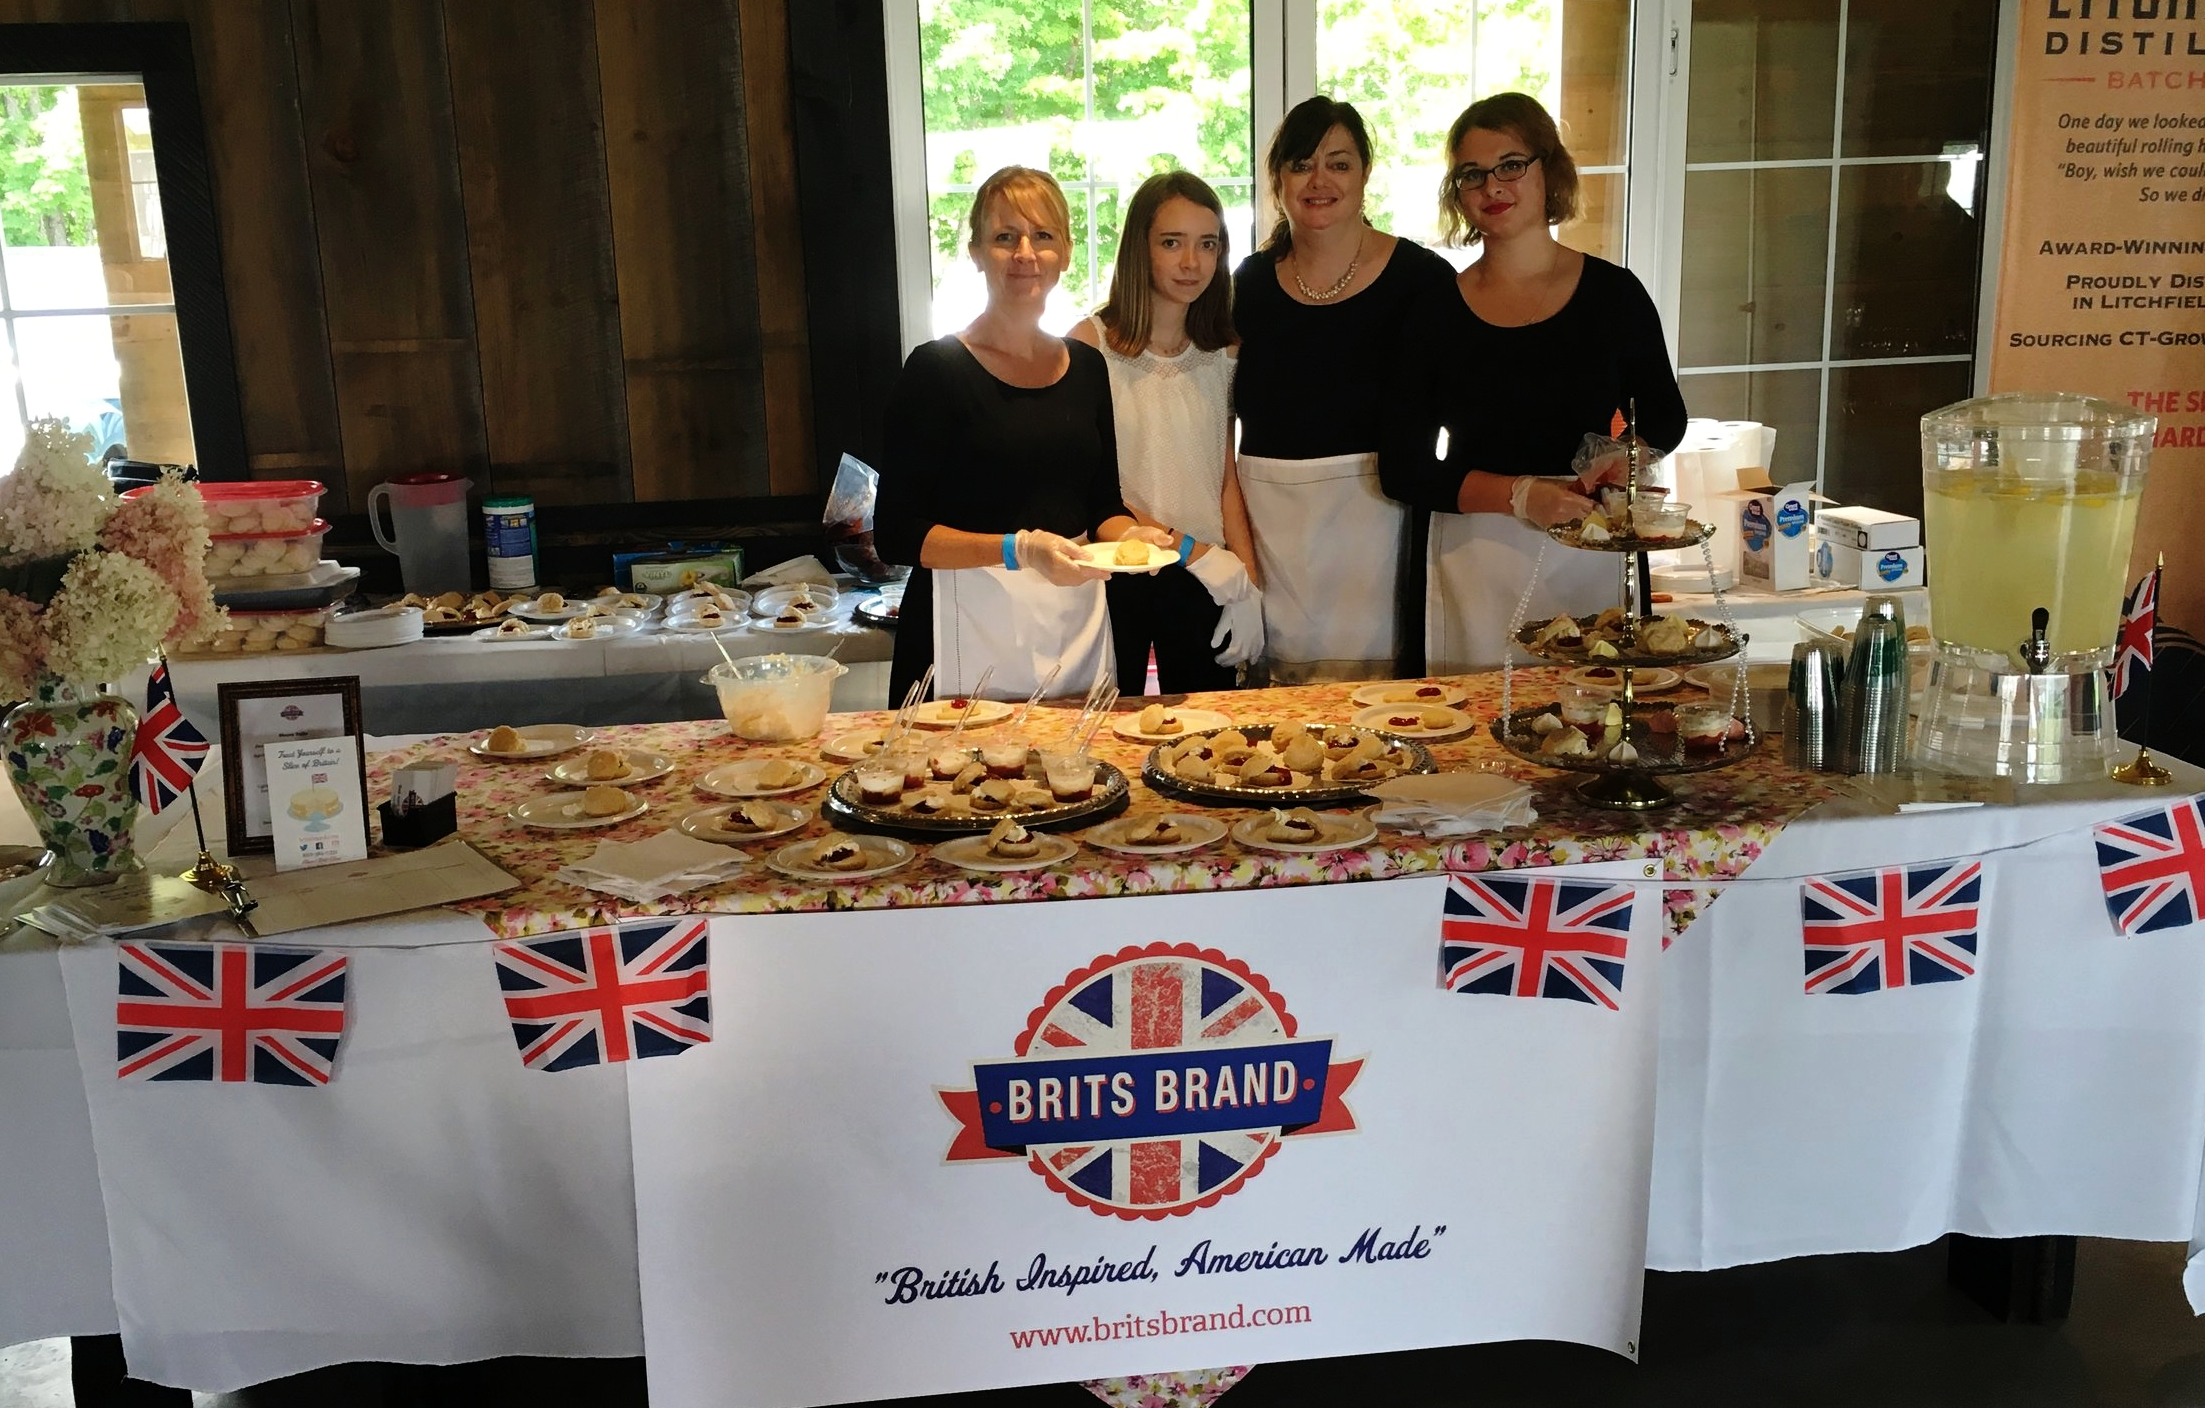 Our setup—the Union Jack bunting is an essential part of any British-themed tea service